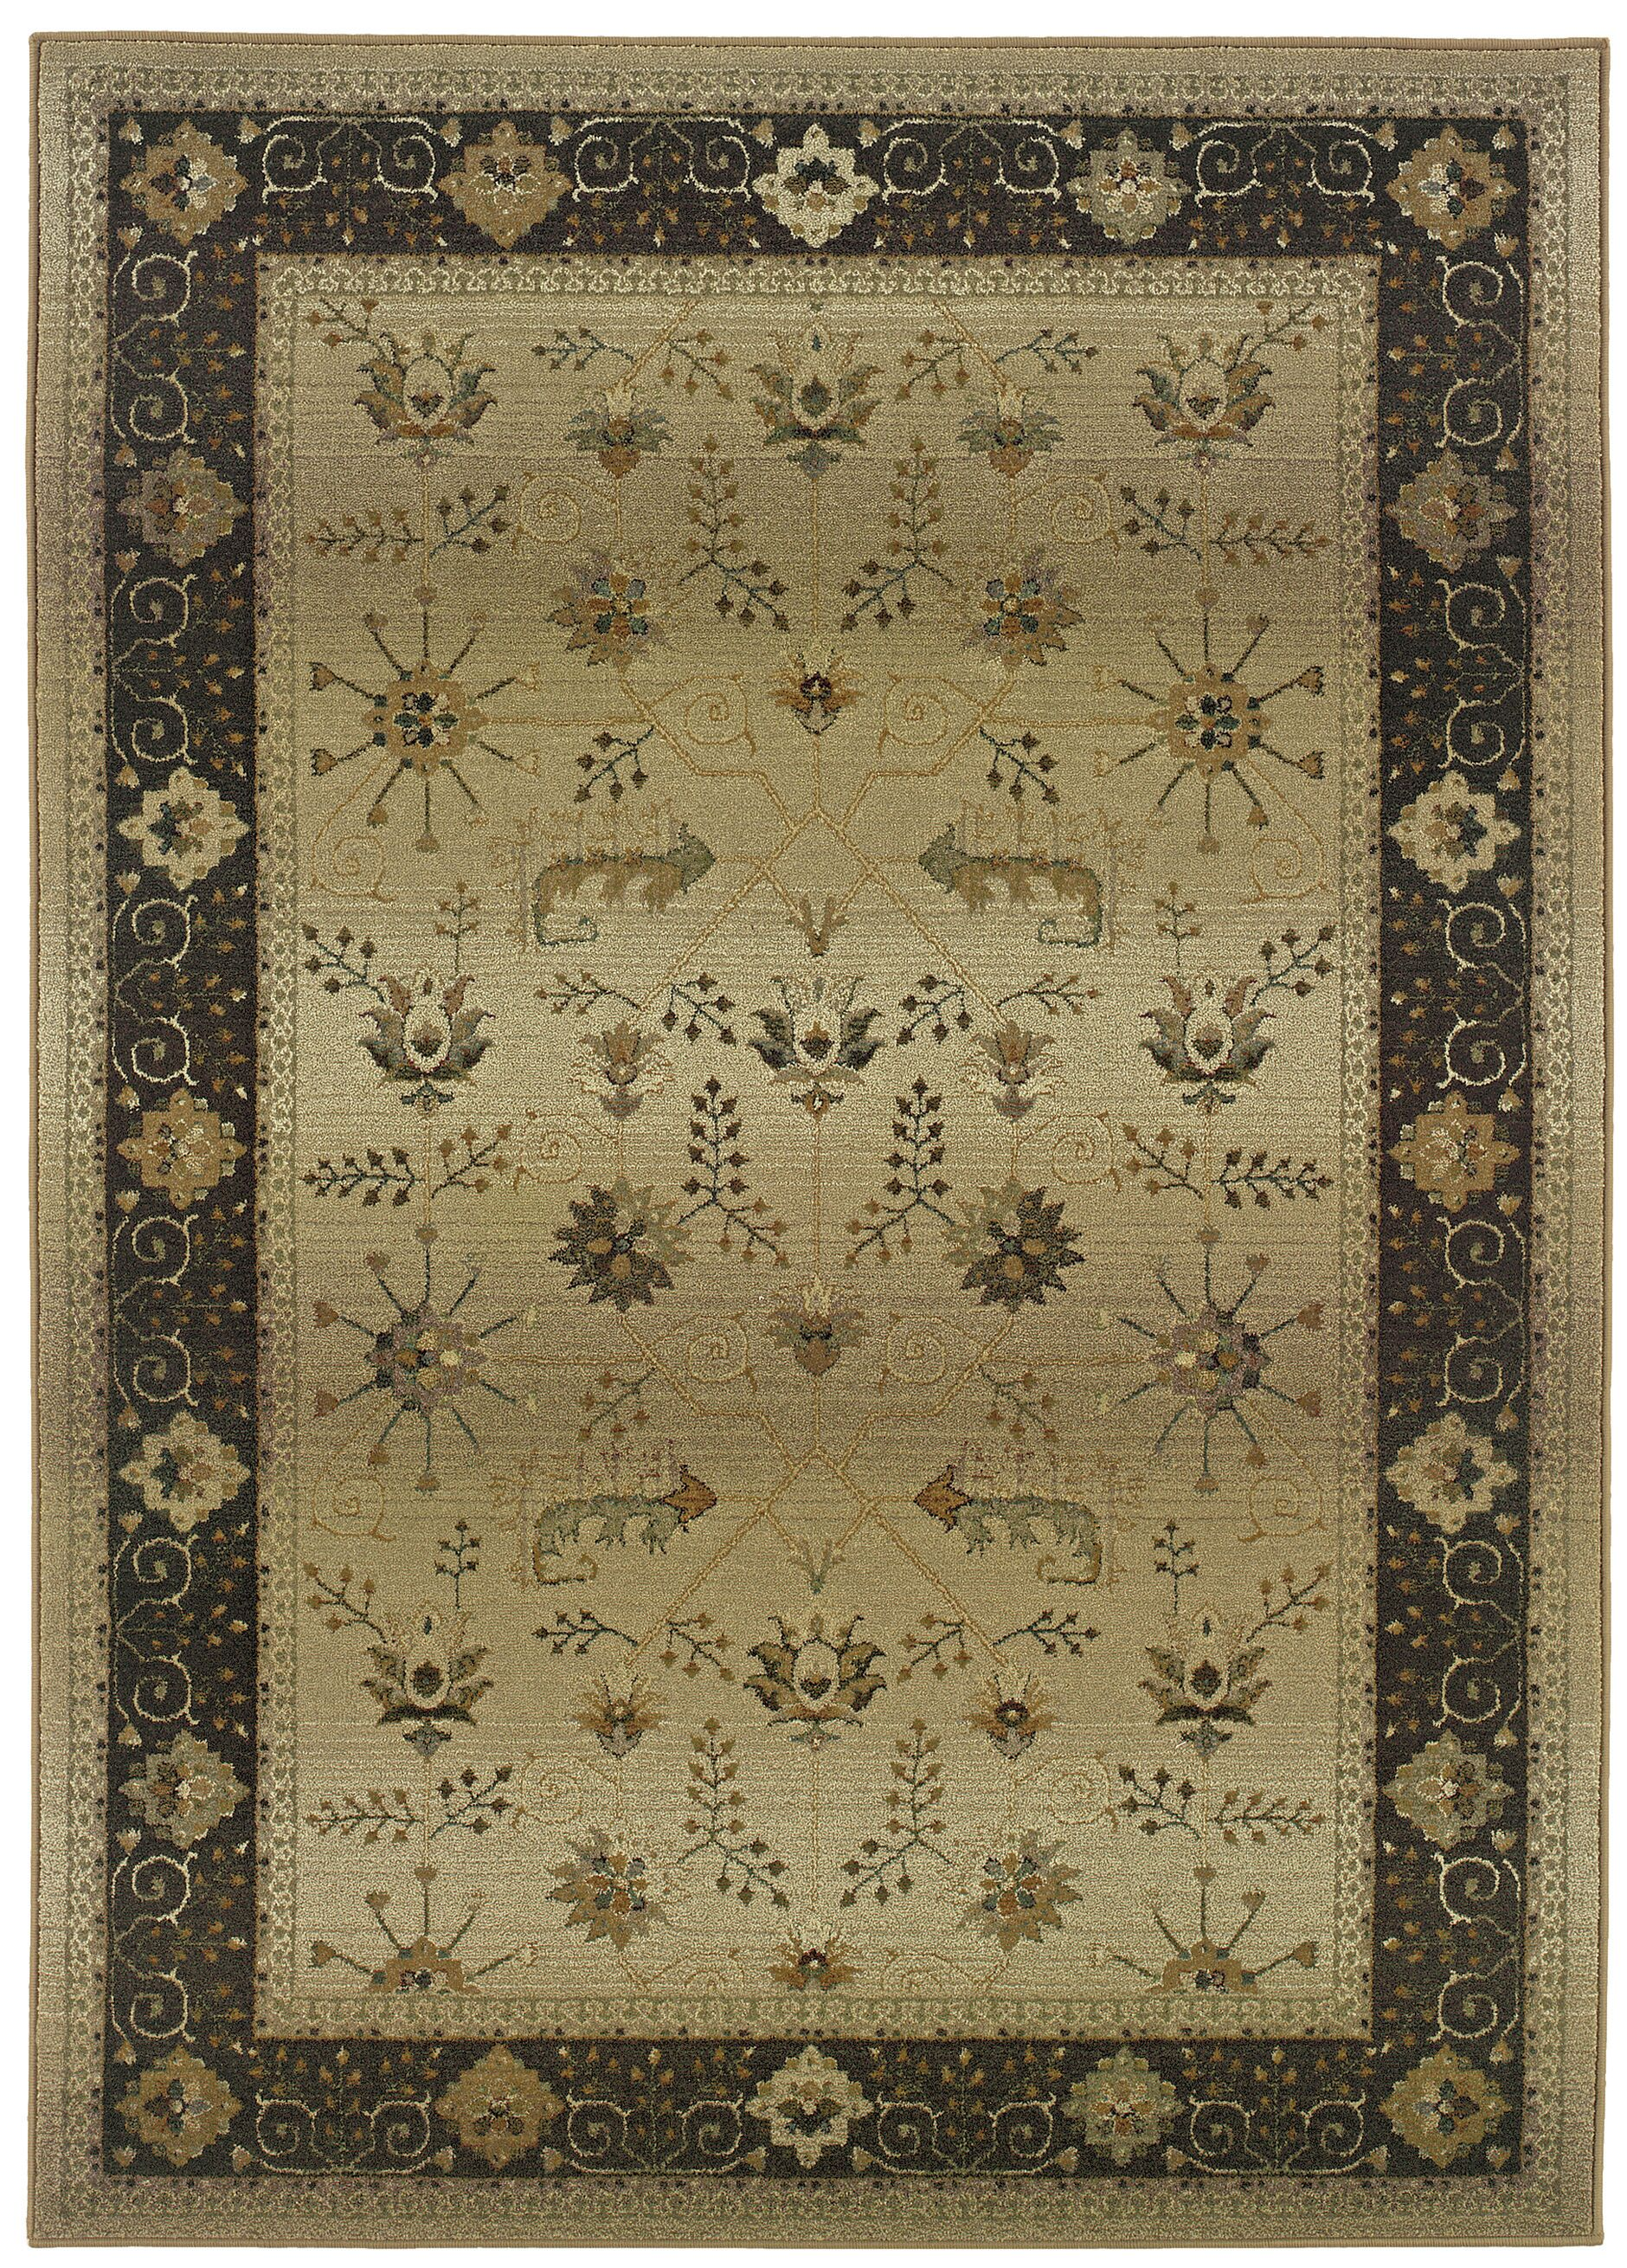 Devon Beige/Brown Oriental Area Rug Rug Size: Rectangle 6'7